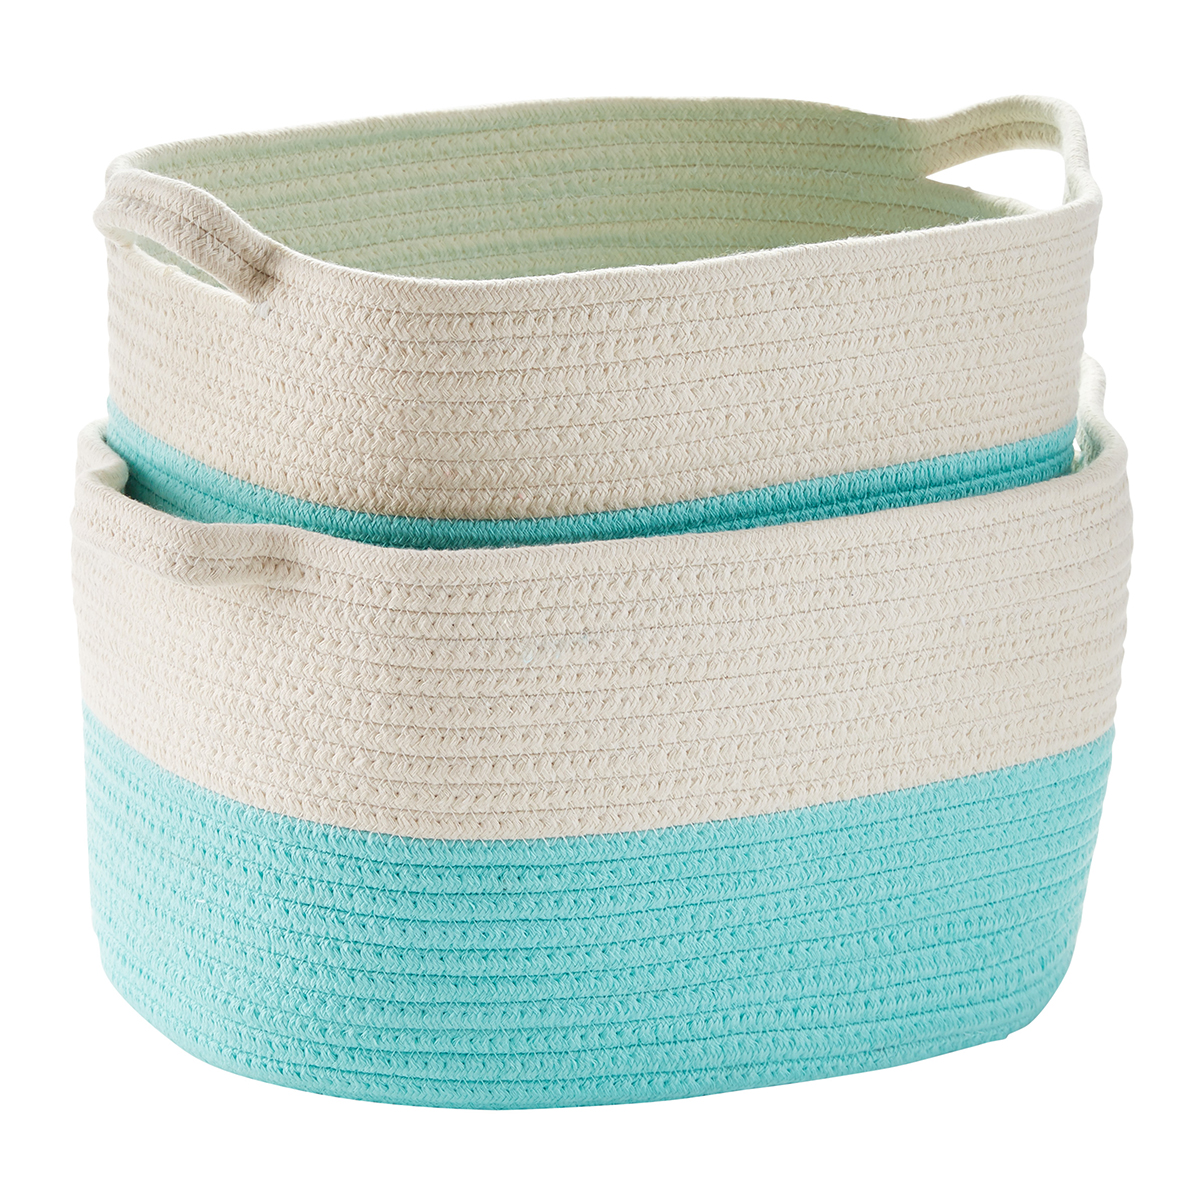 Aqua Cotton Rope Oval Bins with Handles